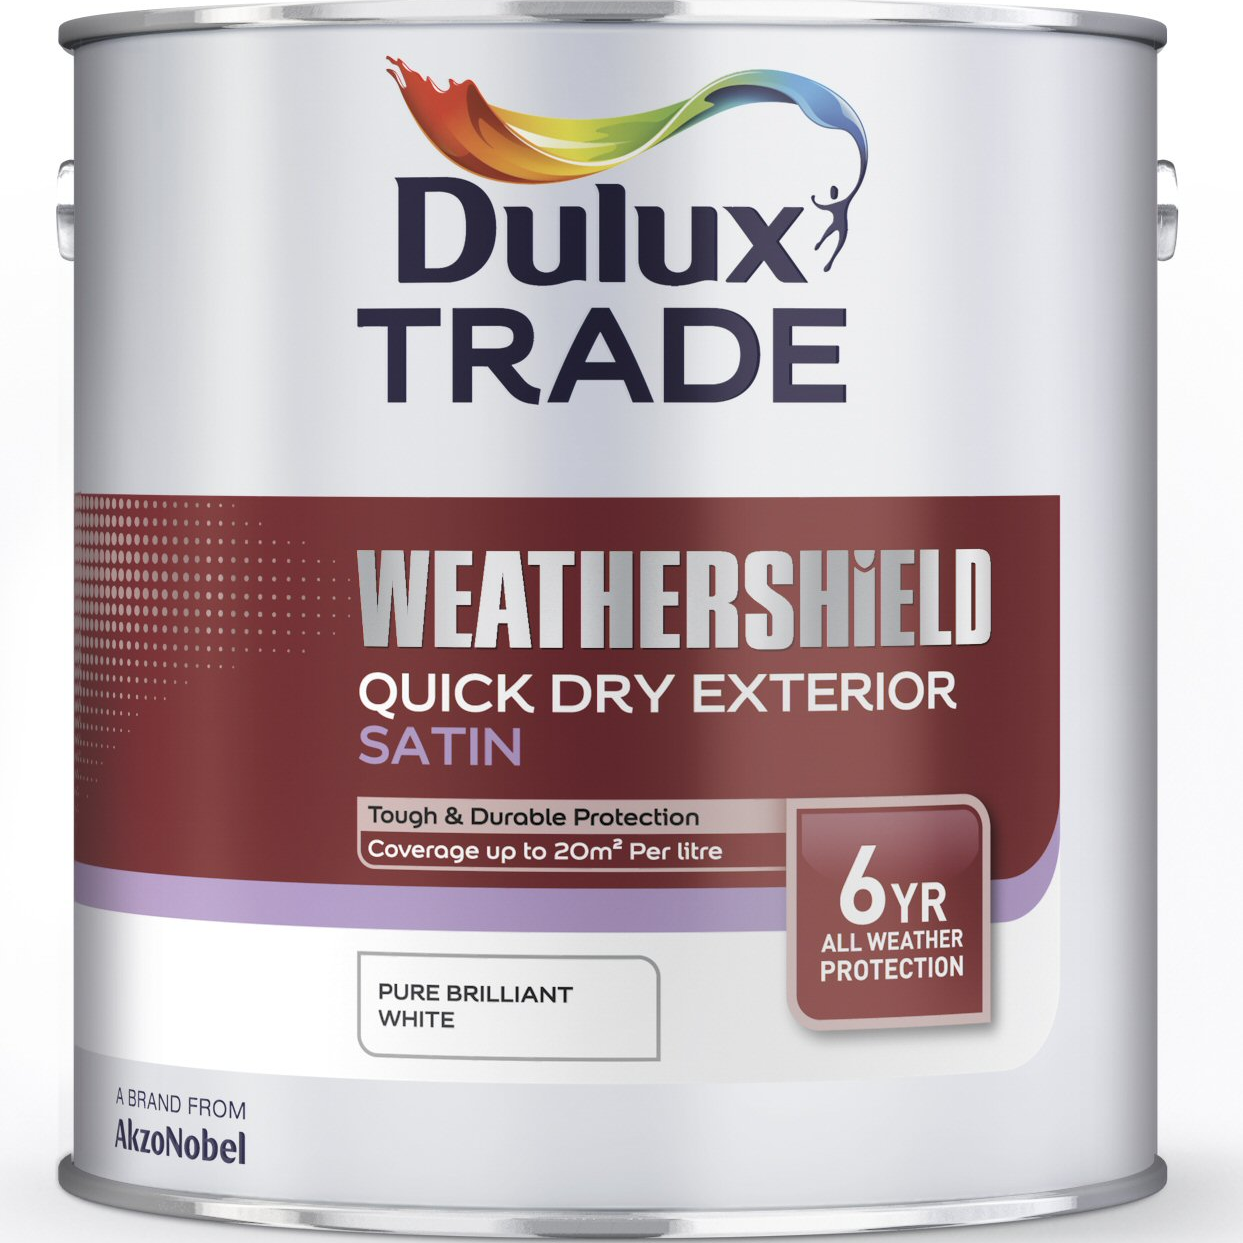 Dulux Trade Weathershield Quick Dry Exterior Satin Custom